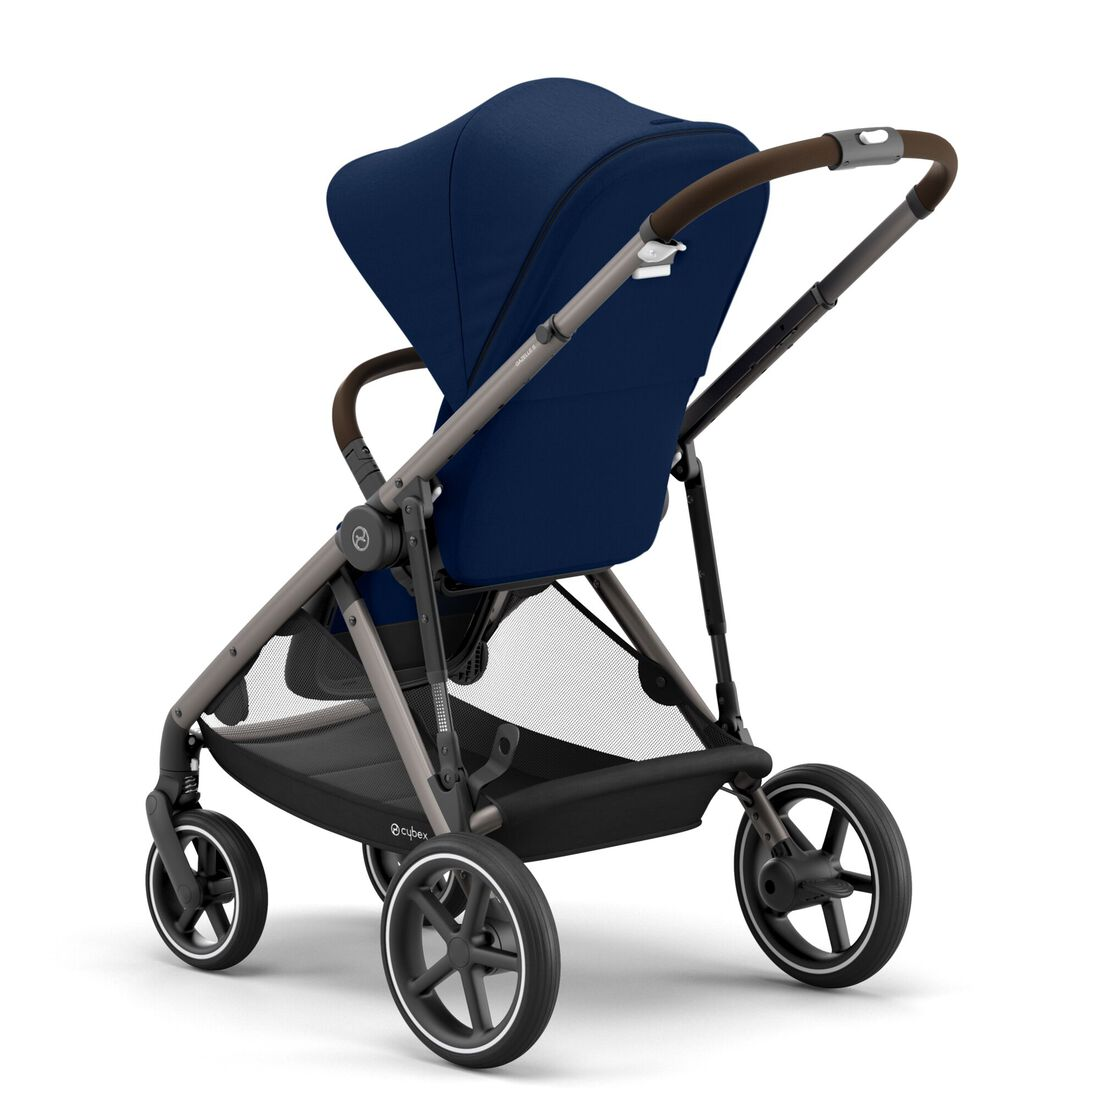 CYBEX Gazelle S - Navy Blue (Taupe Frame) in Navy Blue (Taupe Frame) large image number 8